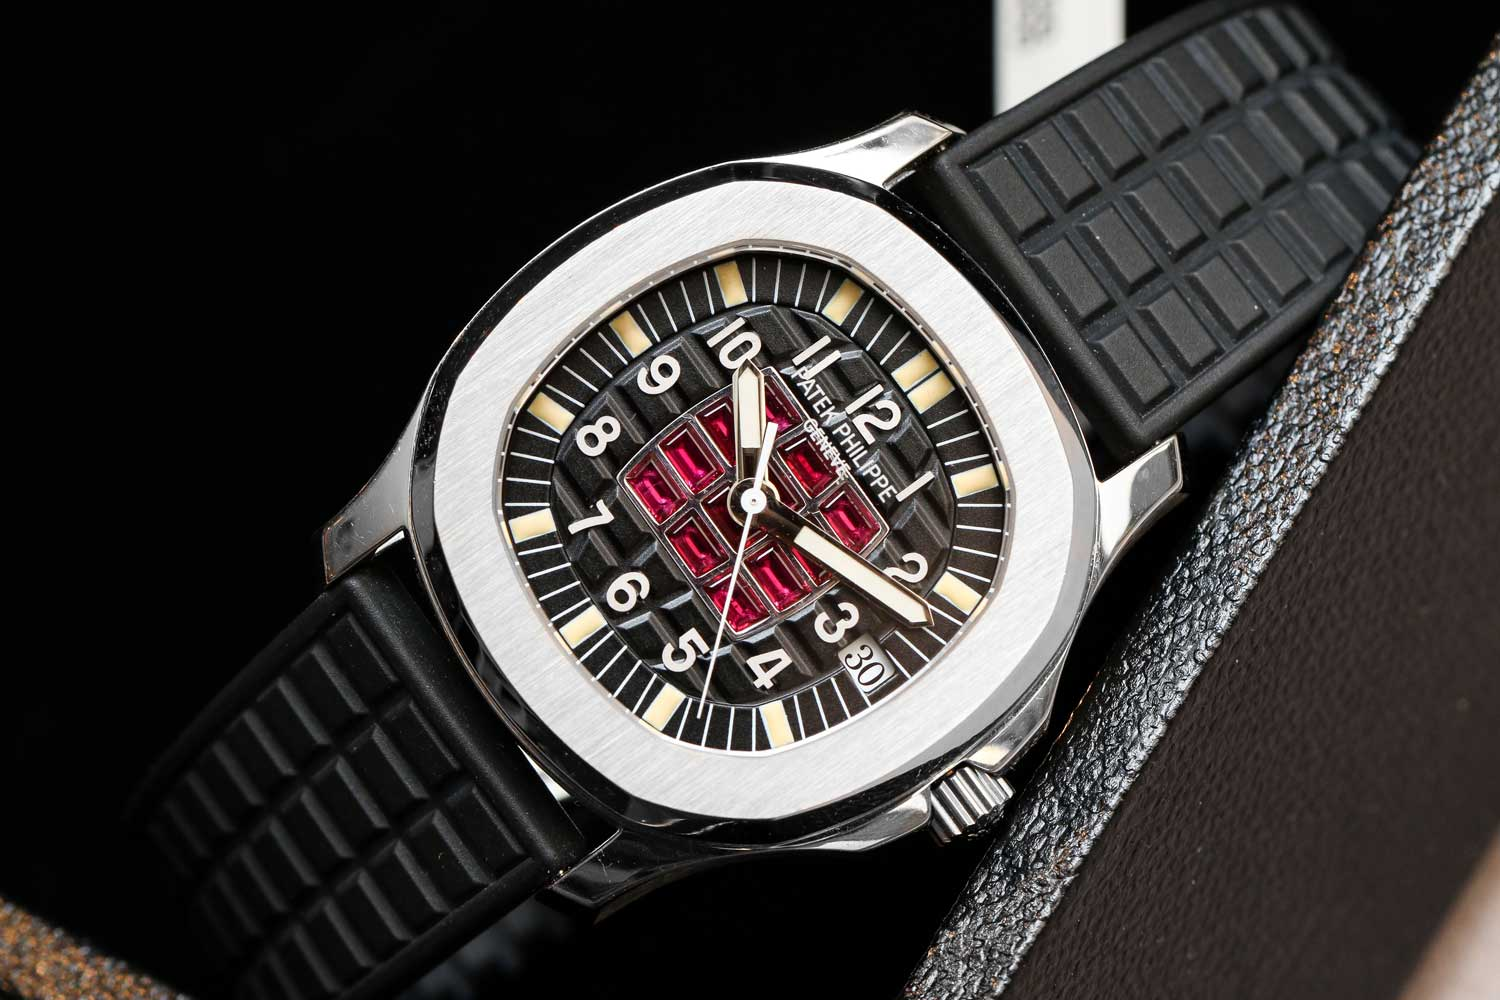 Unique white gold Aquanaut with 12 baguette shaped ruby set on the dial (©Revolution)